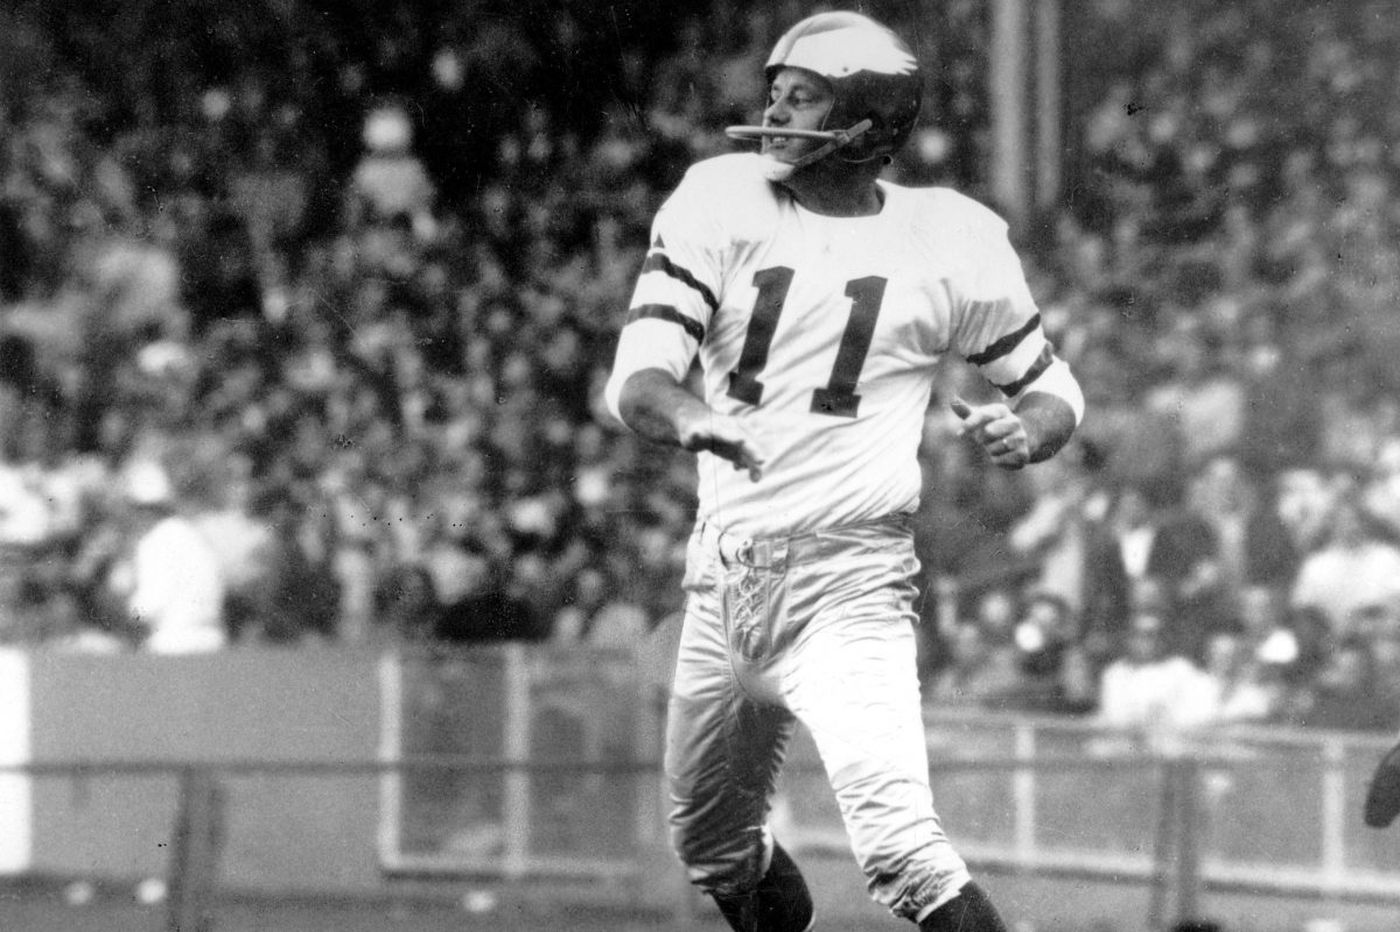 Norm Van Brocklin: The ghost at the NFC title game | Frank's Place